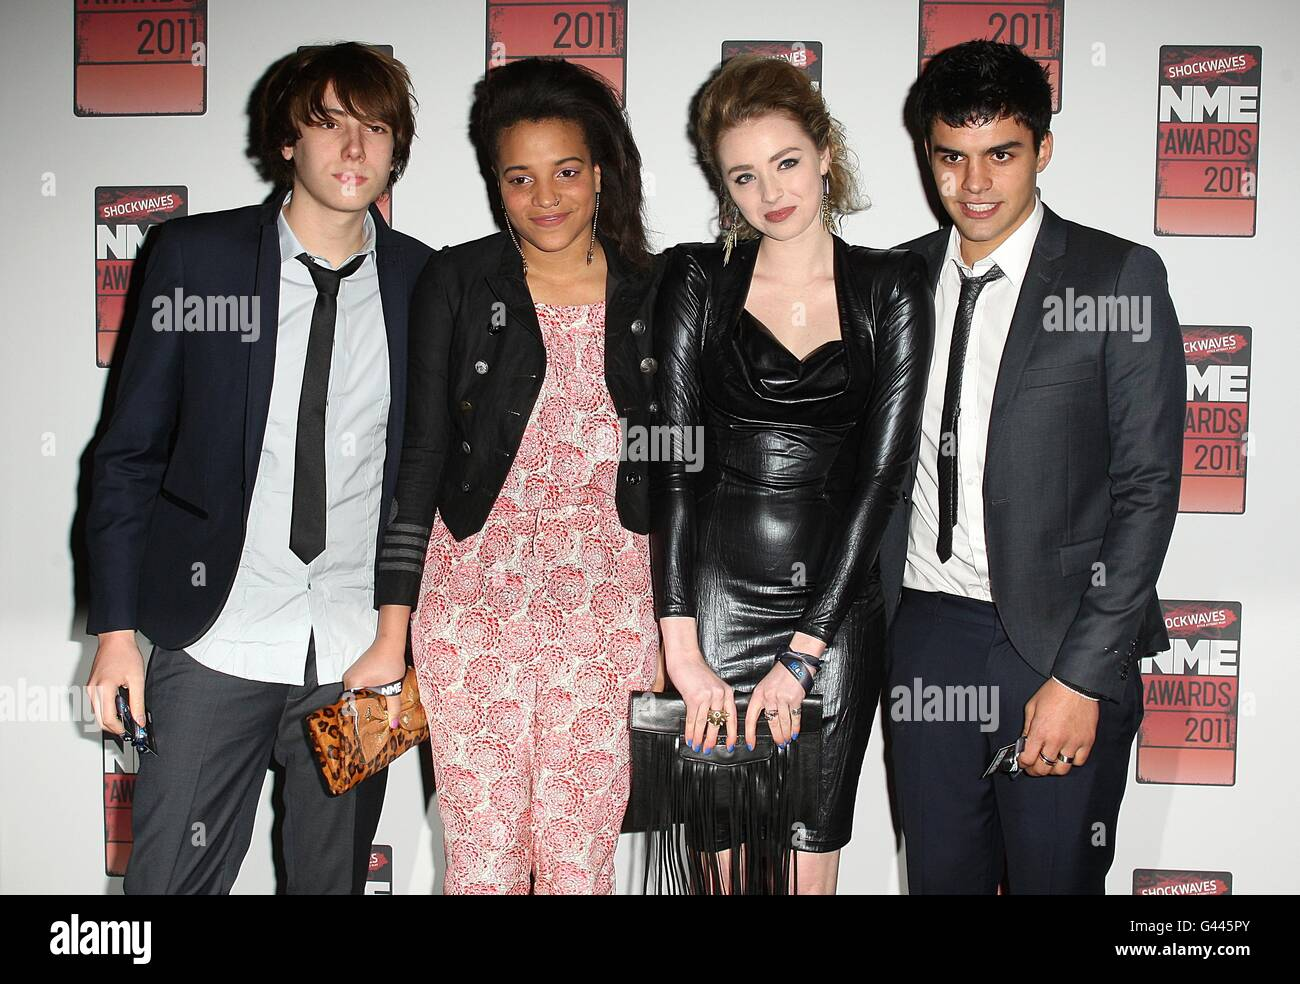 NME Awards 2011 - Arrivals - London - Stock Image